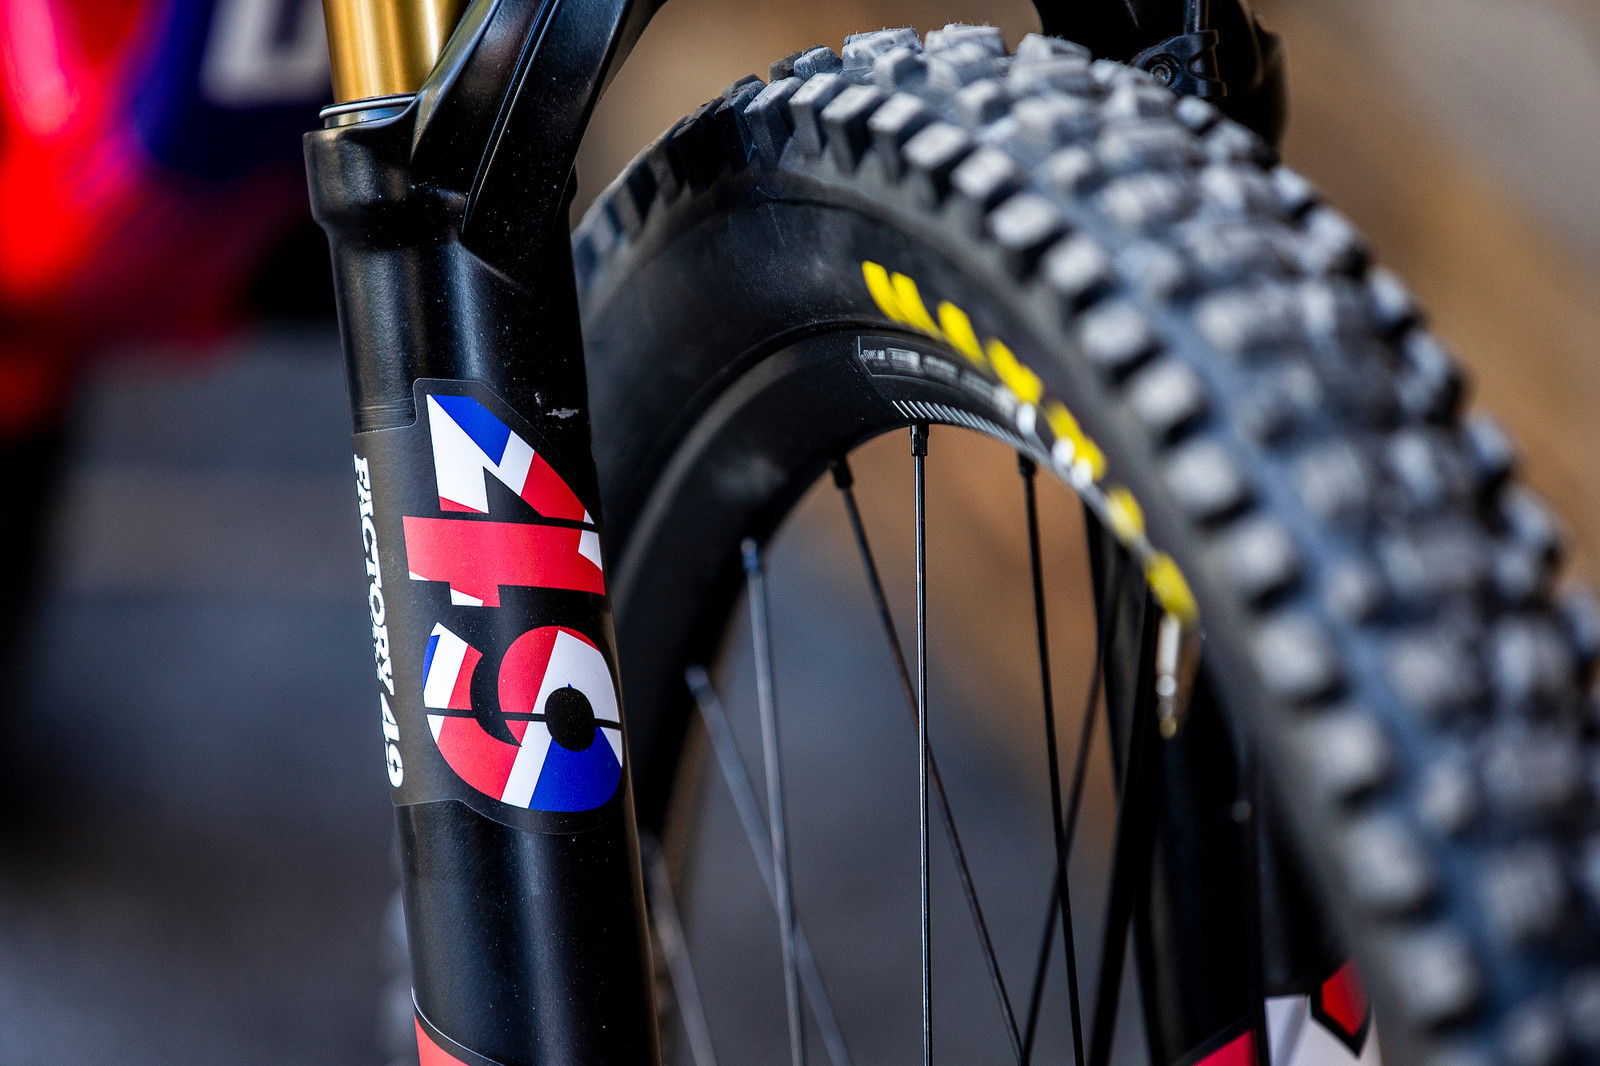 FOX 49 Fork - WORLD CHAMPS BIKE - Matt Walker's Saracen Myst - Mountain Biking Pictures - Vital MTB